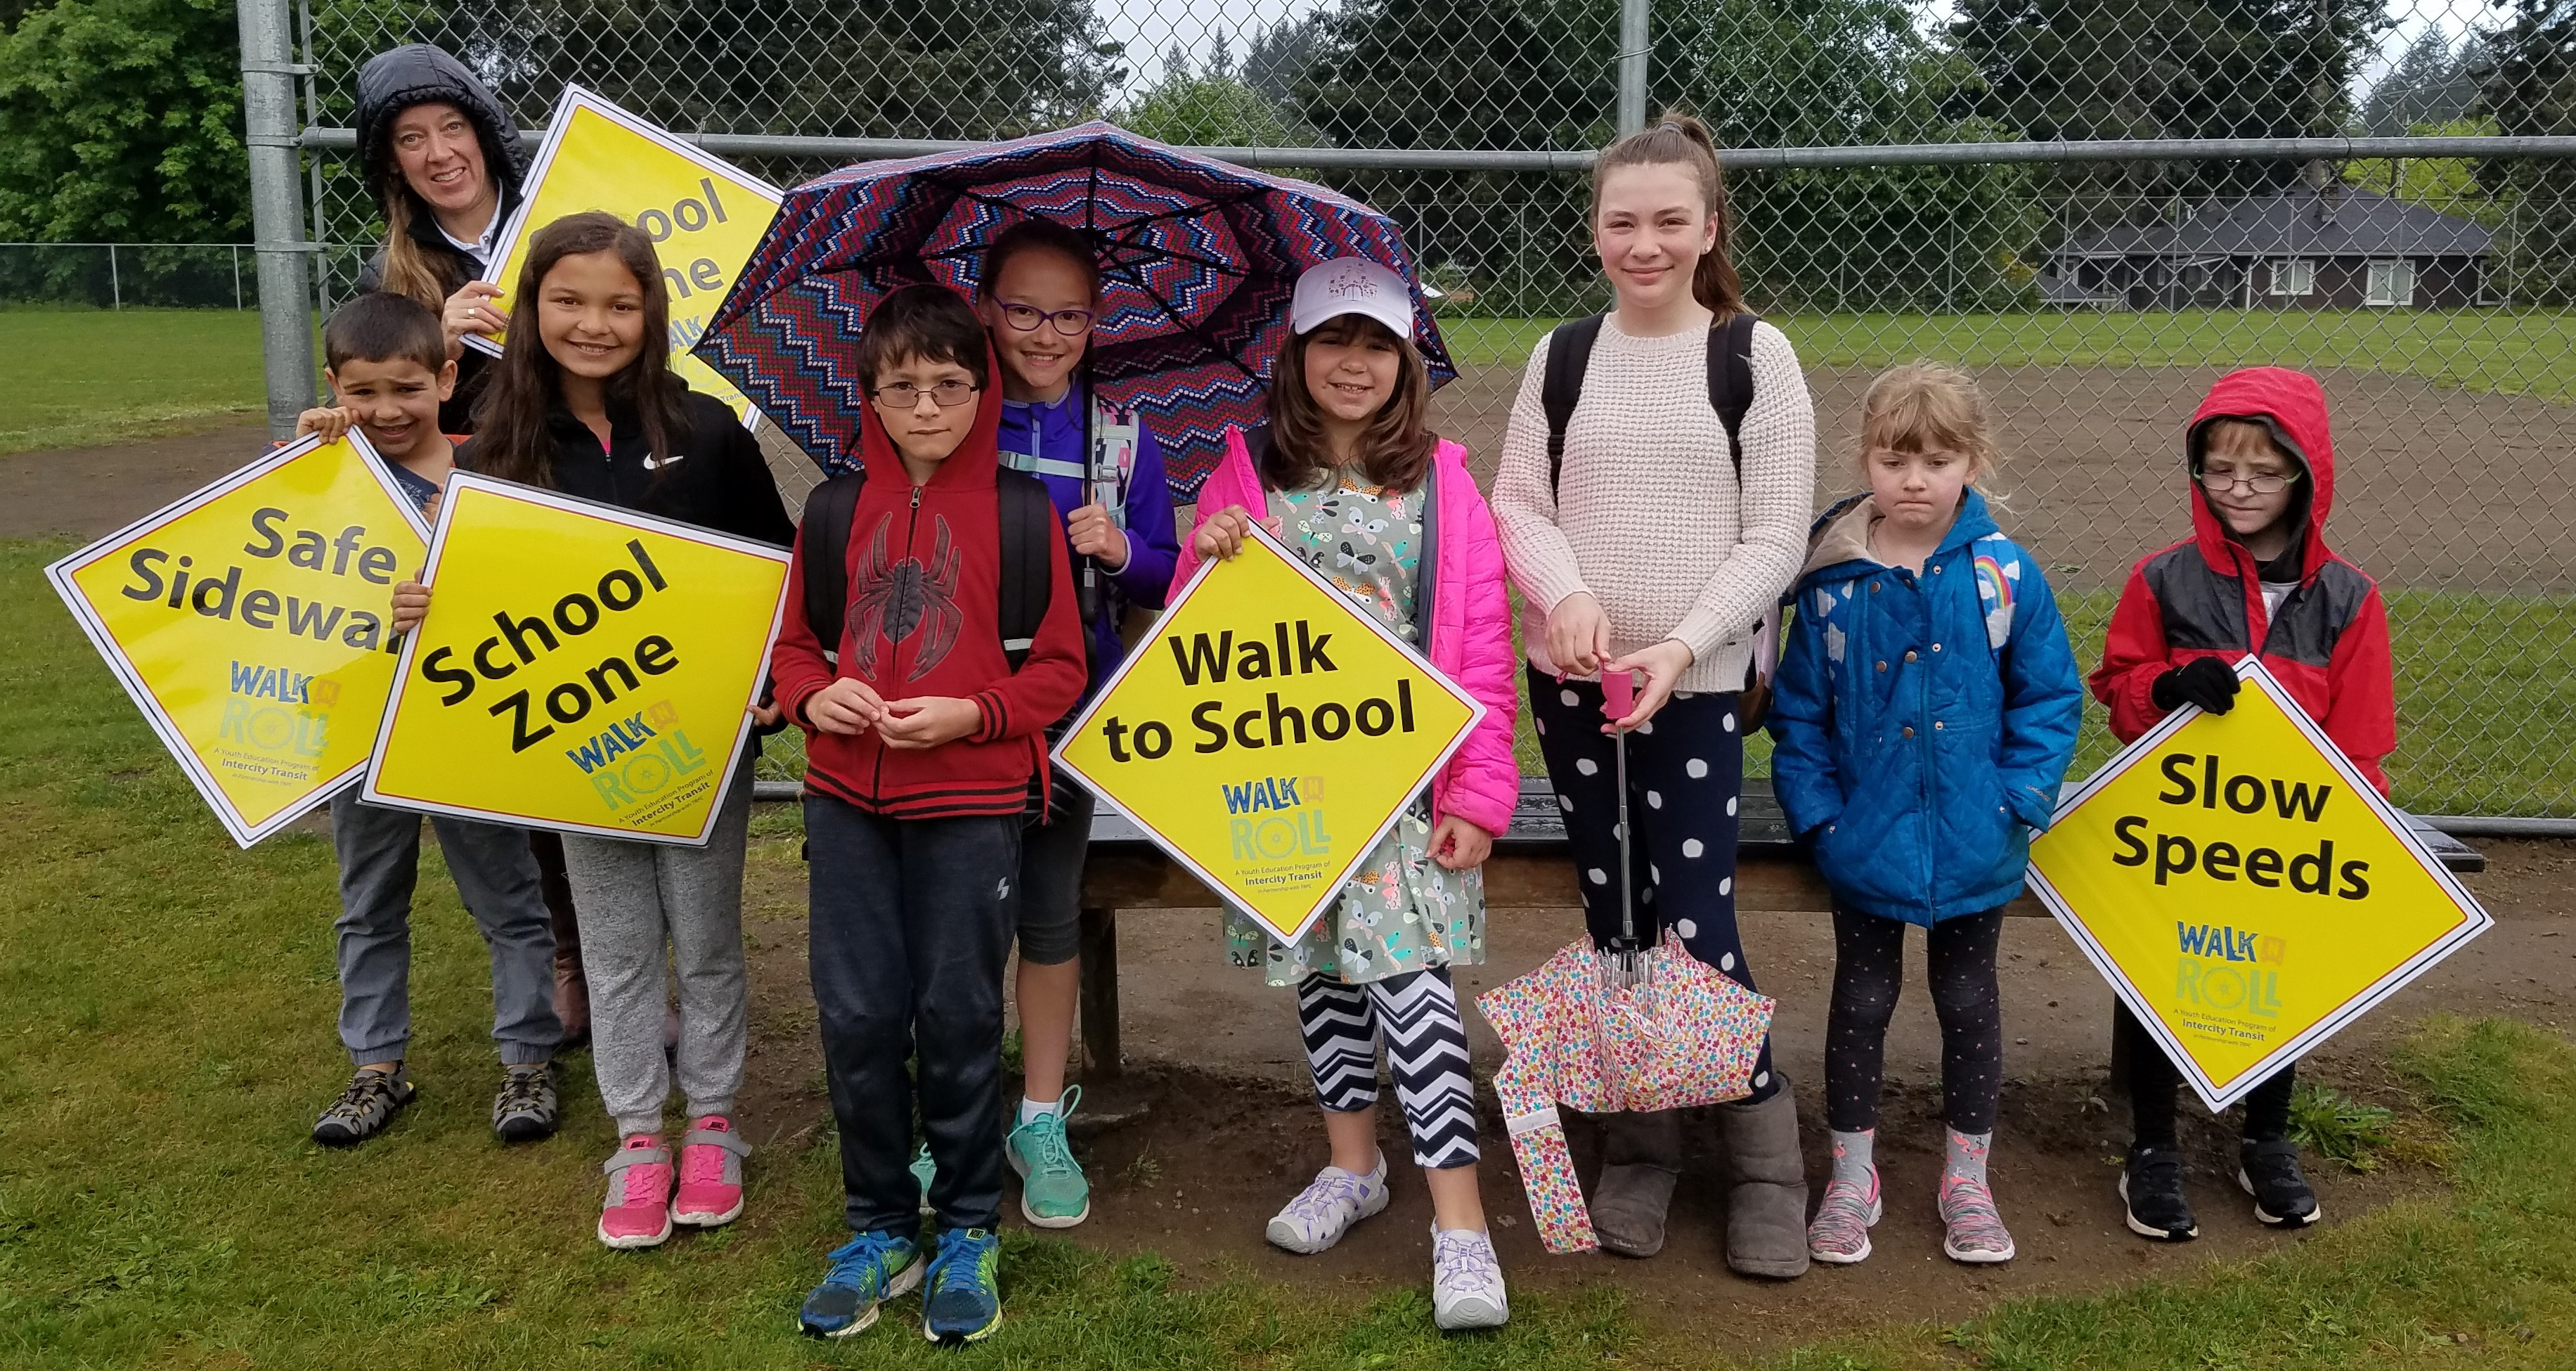 Kids and teacher at school holding Walk N Roll signs